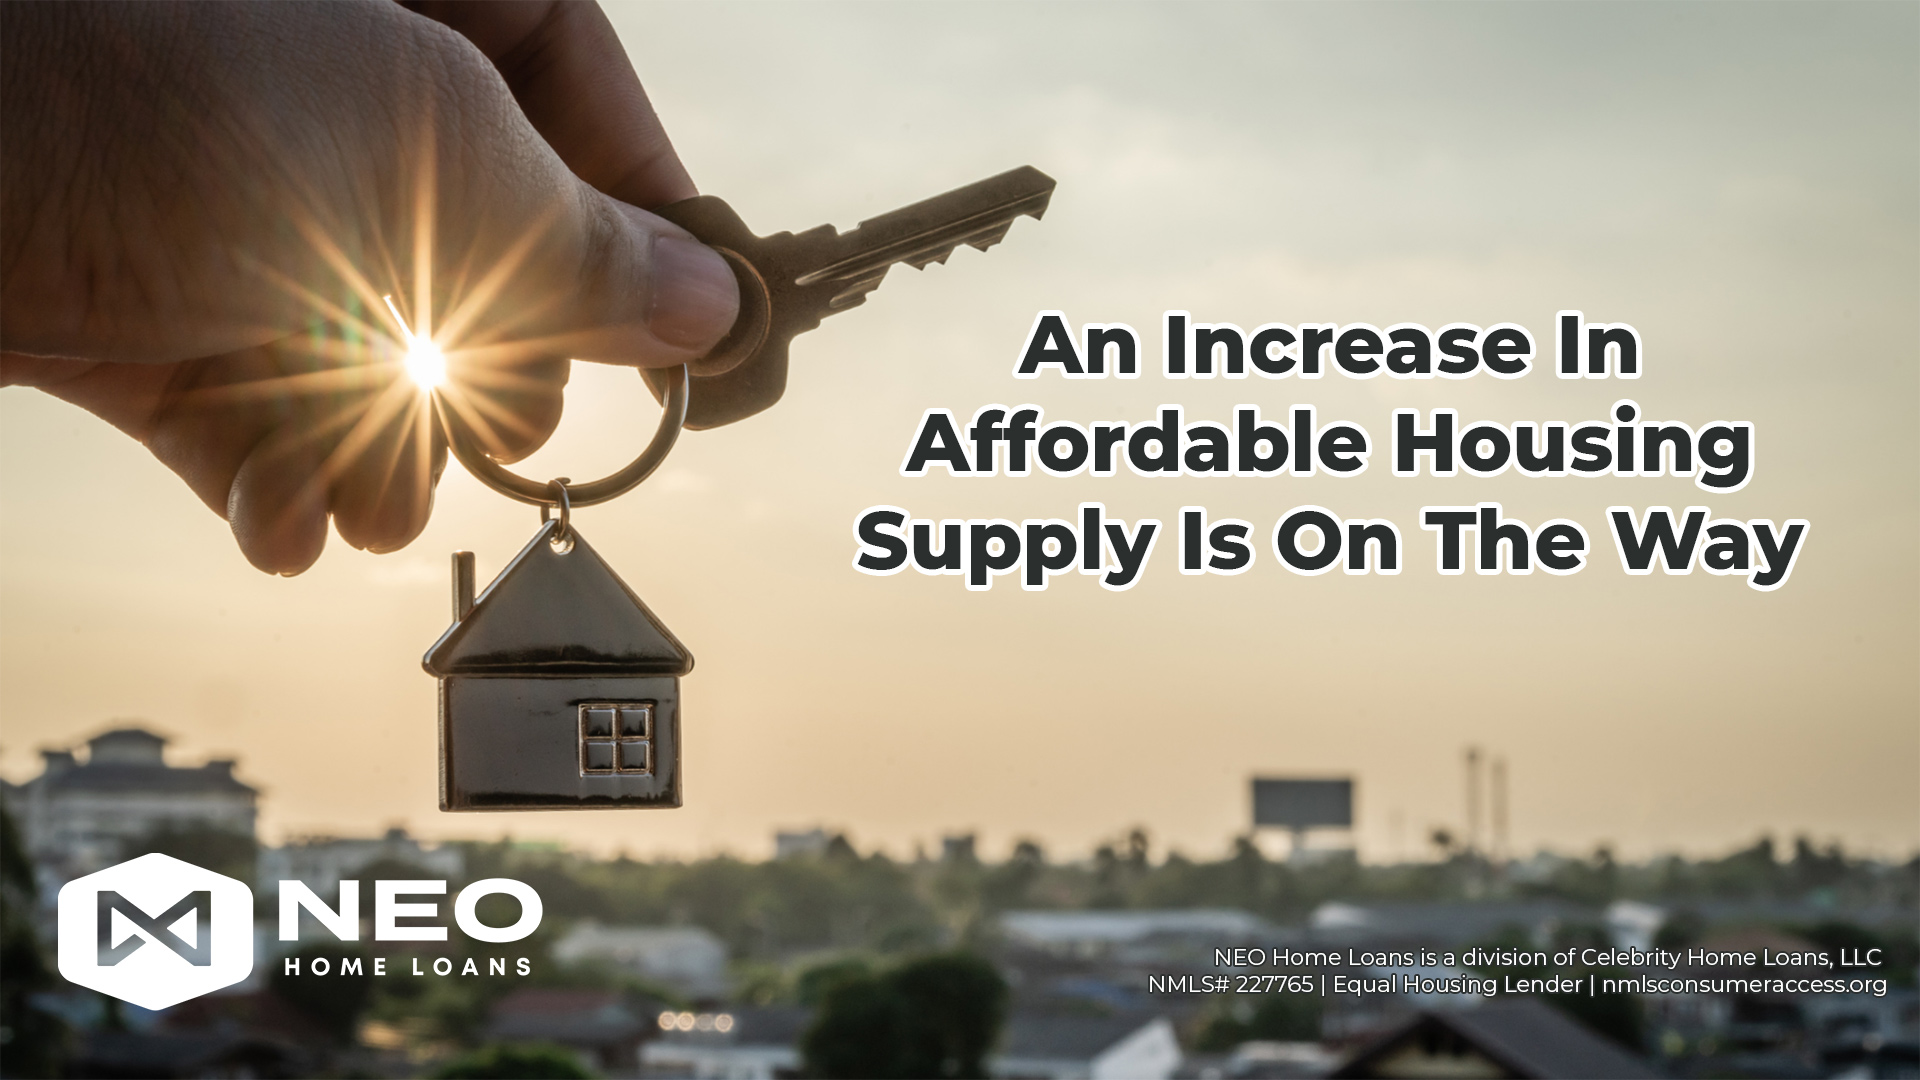 An Increase In Affordable Housing Supply Is On The Way